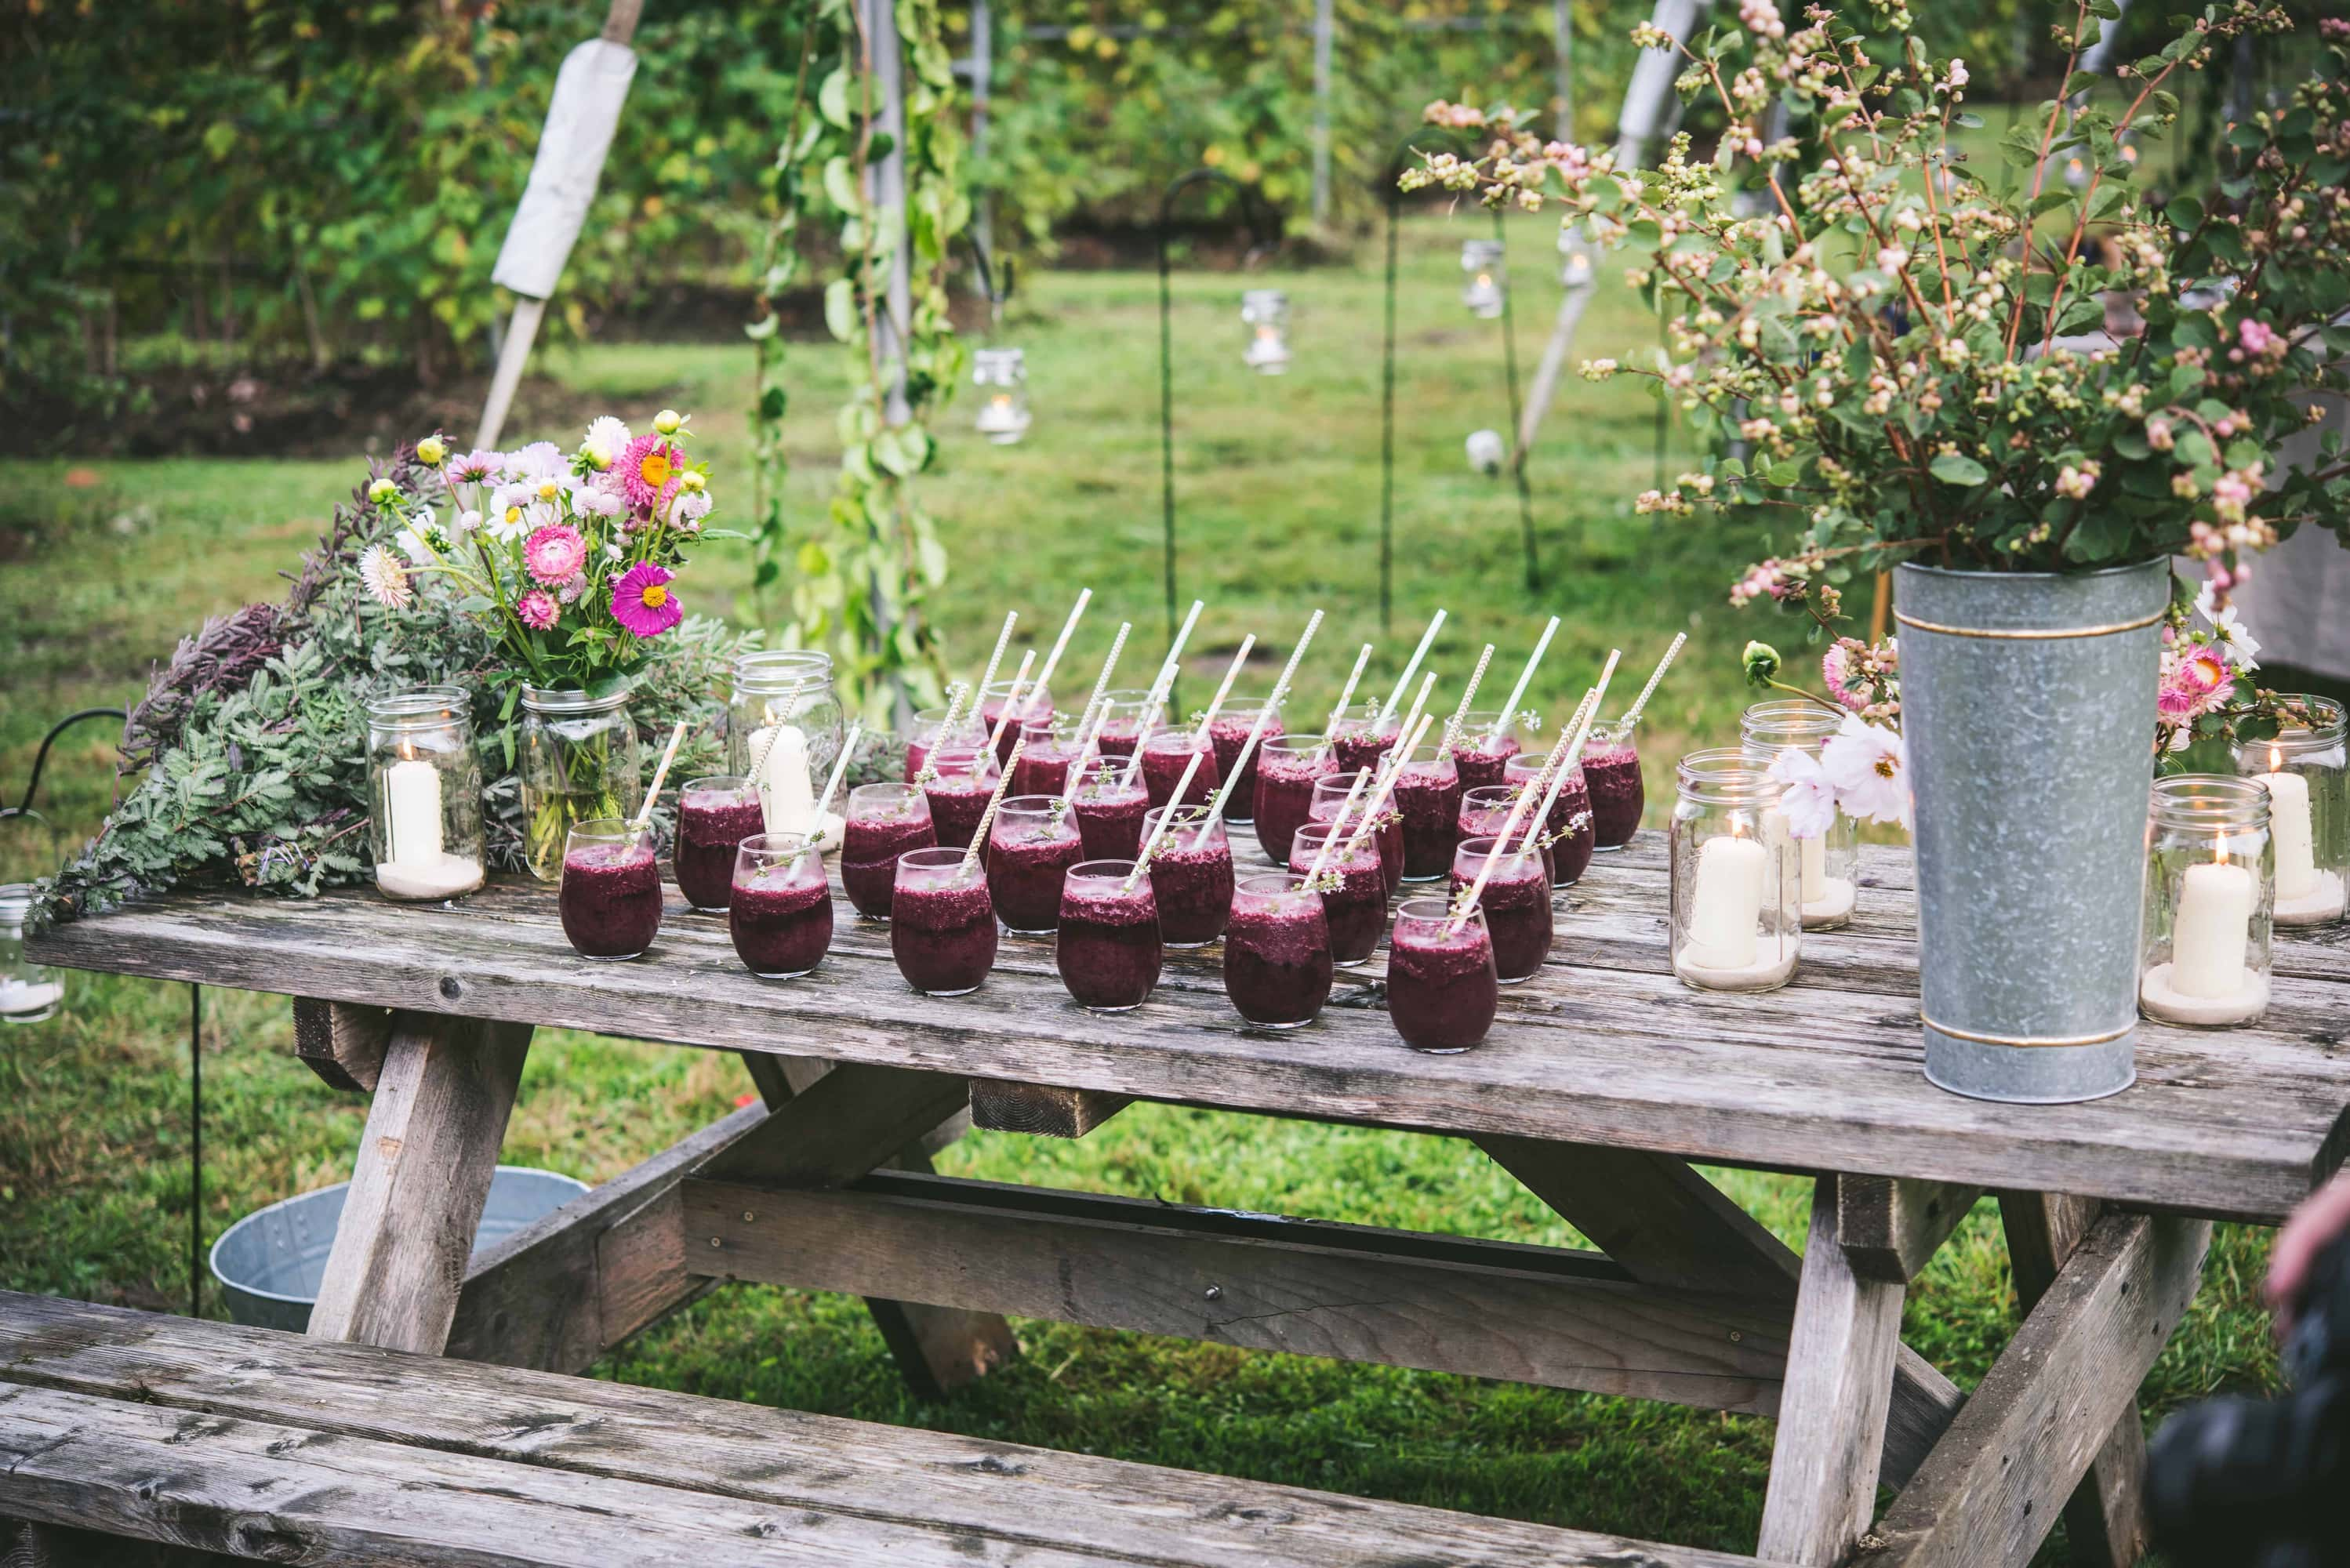 View of desserts set up on a rustic table at a farm